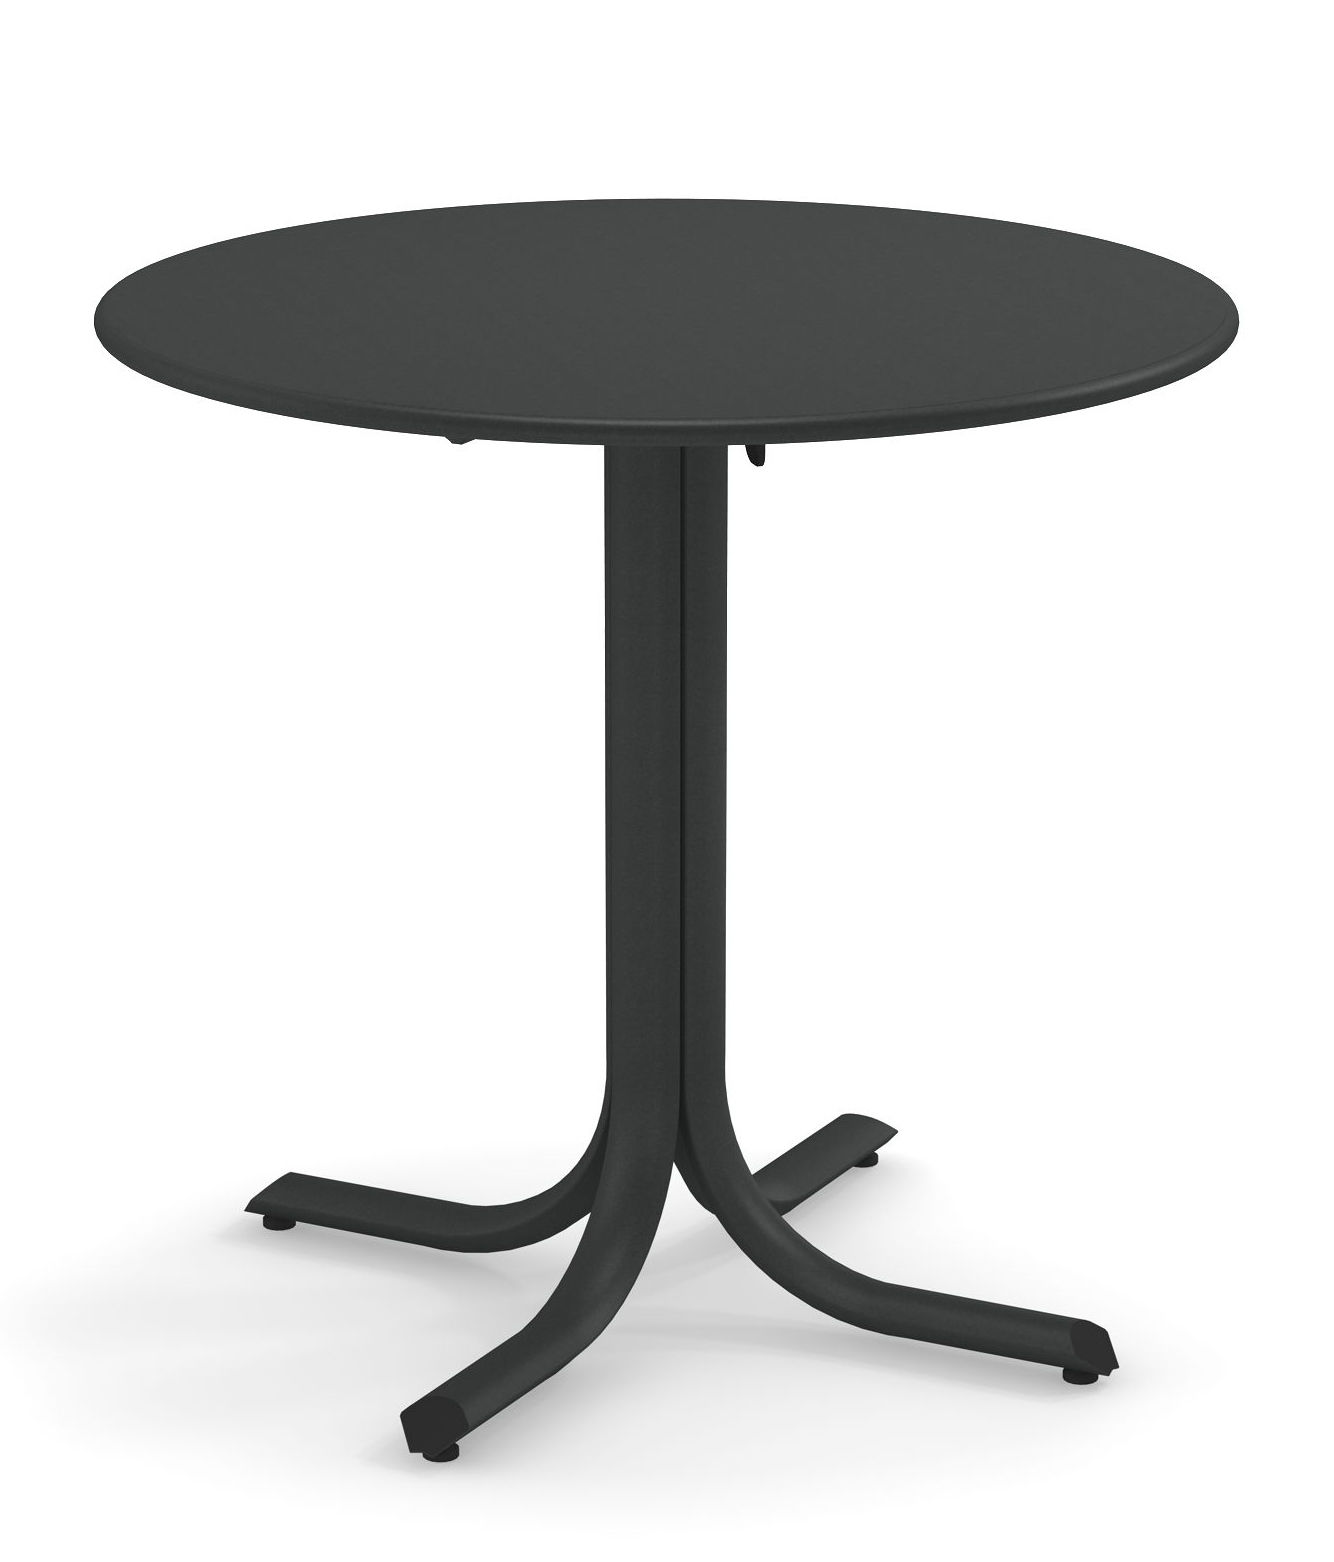 Outdoor - Garden Tables - System Foldable table - / Ø 80 cm by Emu - Antique iron - Galvanised painted steel